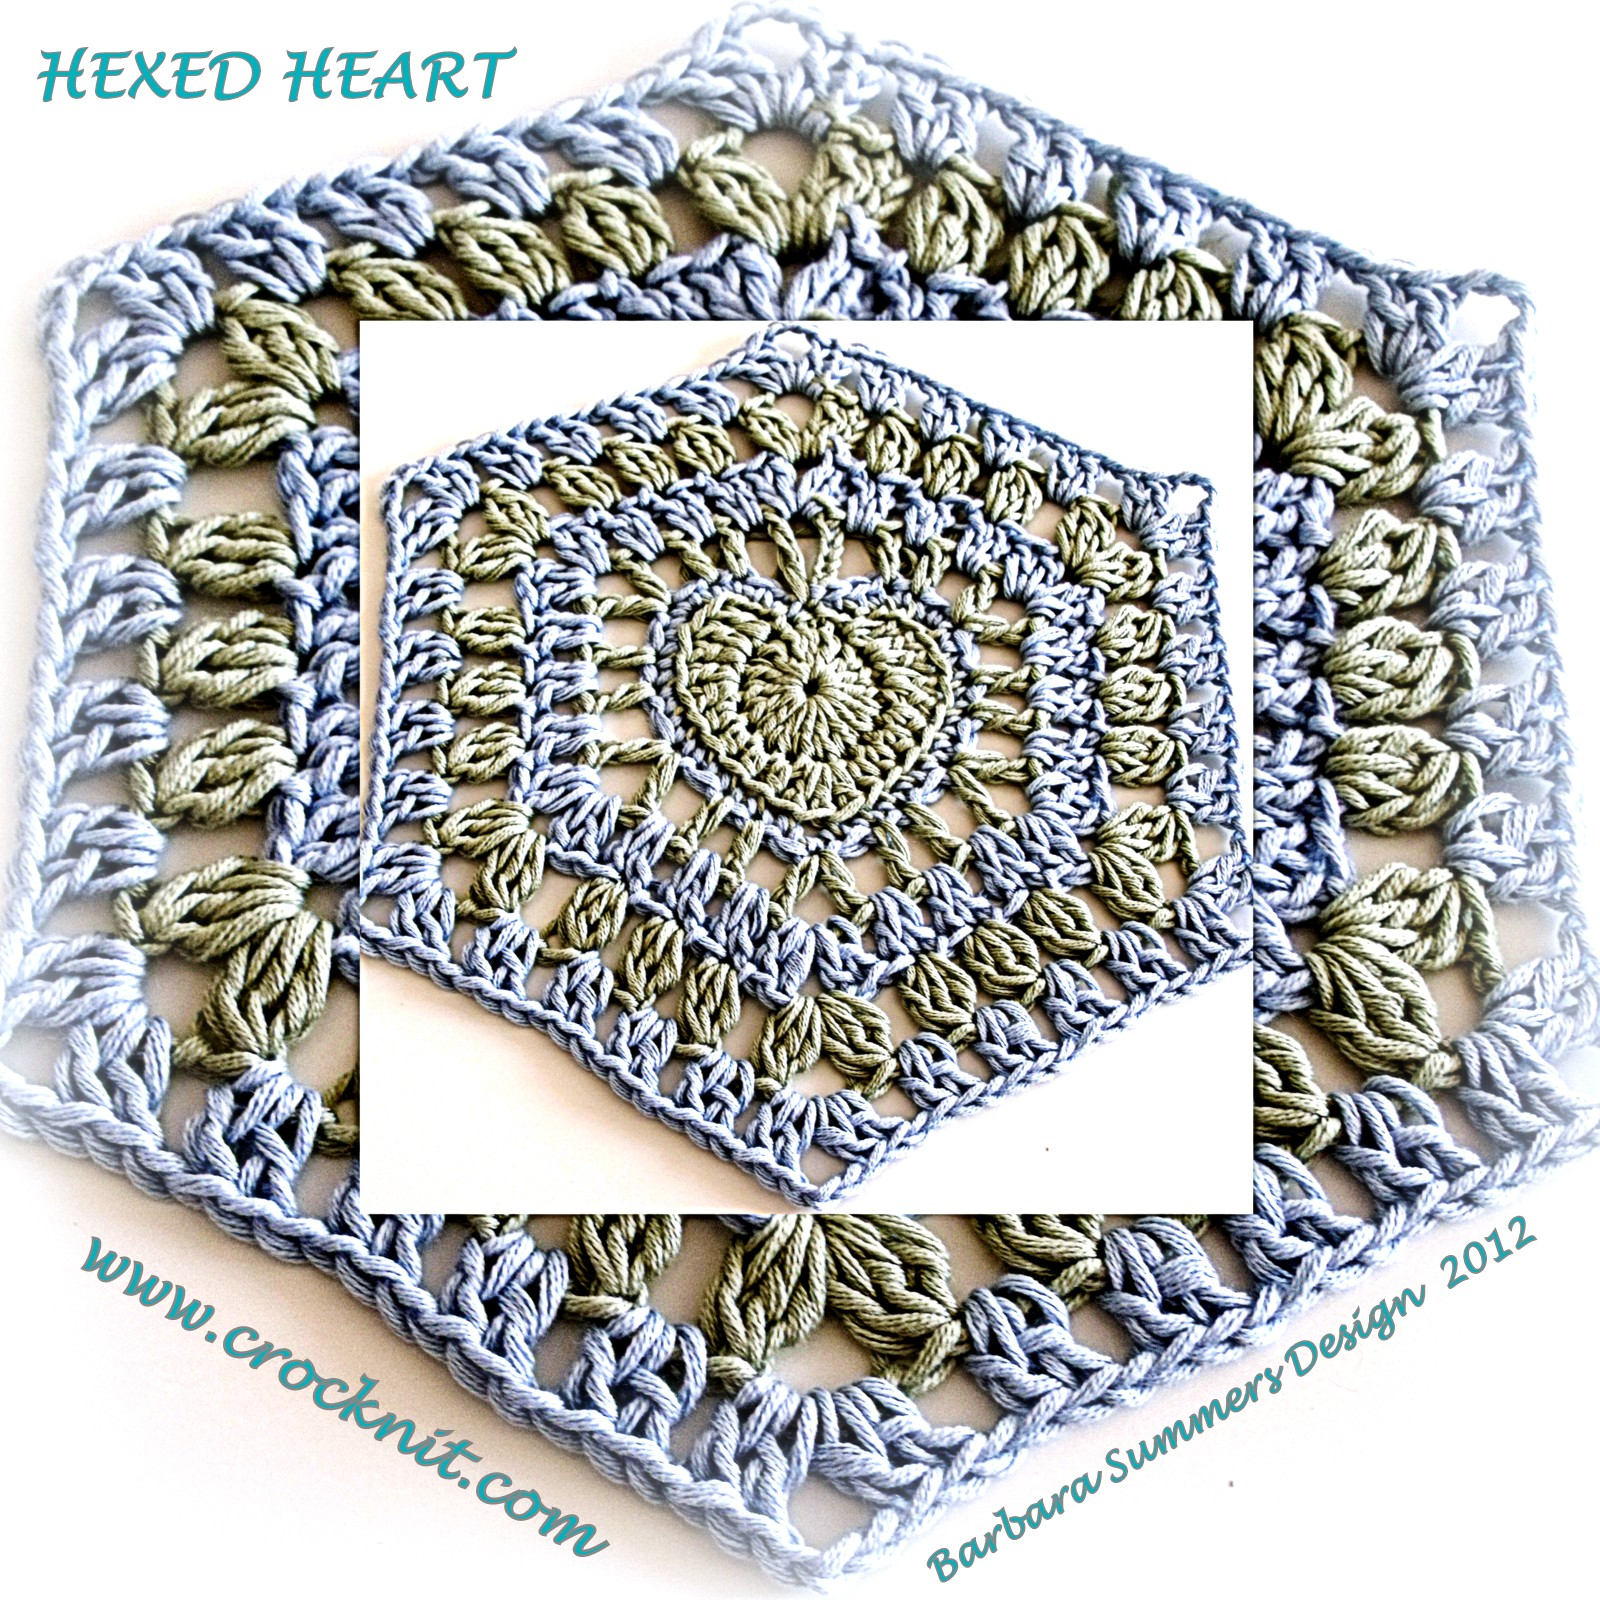 Microcknit creations my perfect heart is hexed crochet patterns how to crochet hearts hexagon hearts hearts afghans granny bankloansurffo Choice Image